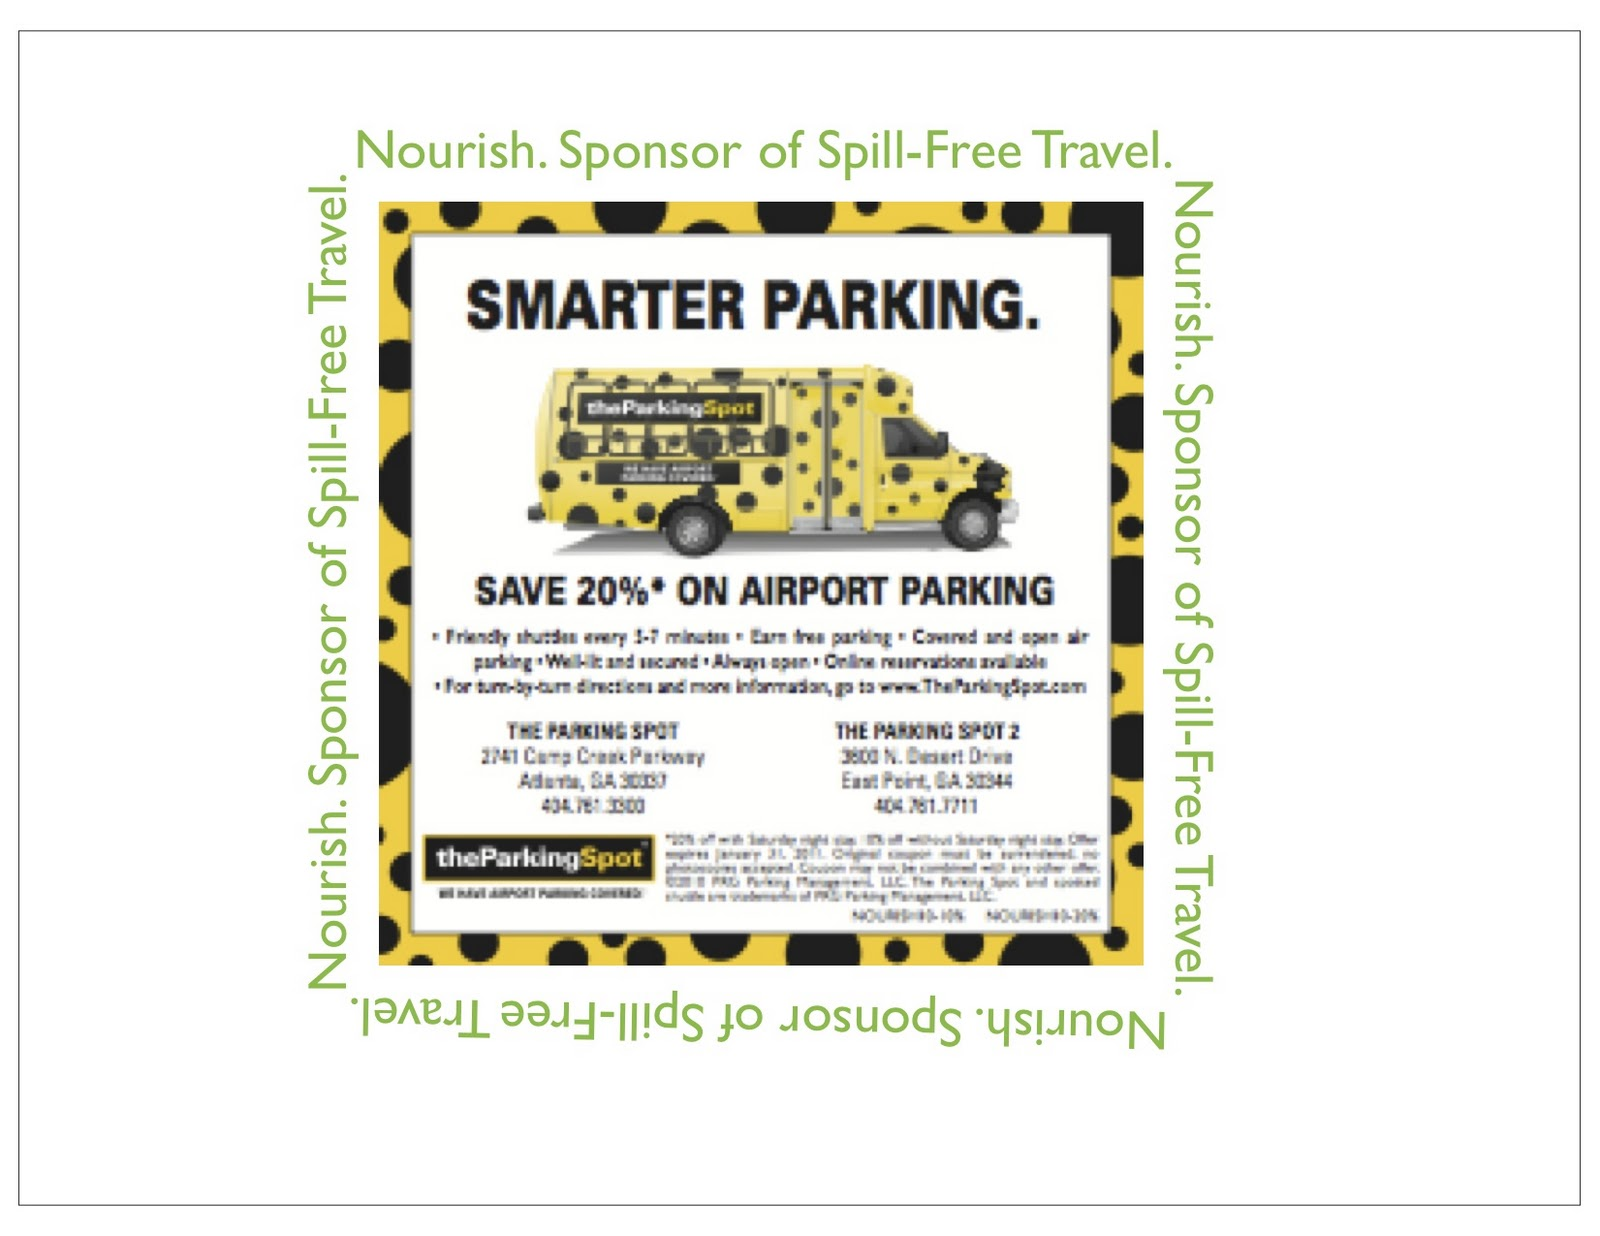 The Parking Spot rarely offers promo codes. On average, The Parking Spot offers 0 codes or coupons per month. Check this page often, or follow The Parking Spot (hit the follow button up top) to keep updated on their latest discount codes. Check for The Parking Spot's promo code exclusions/5().